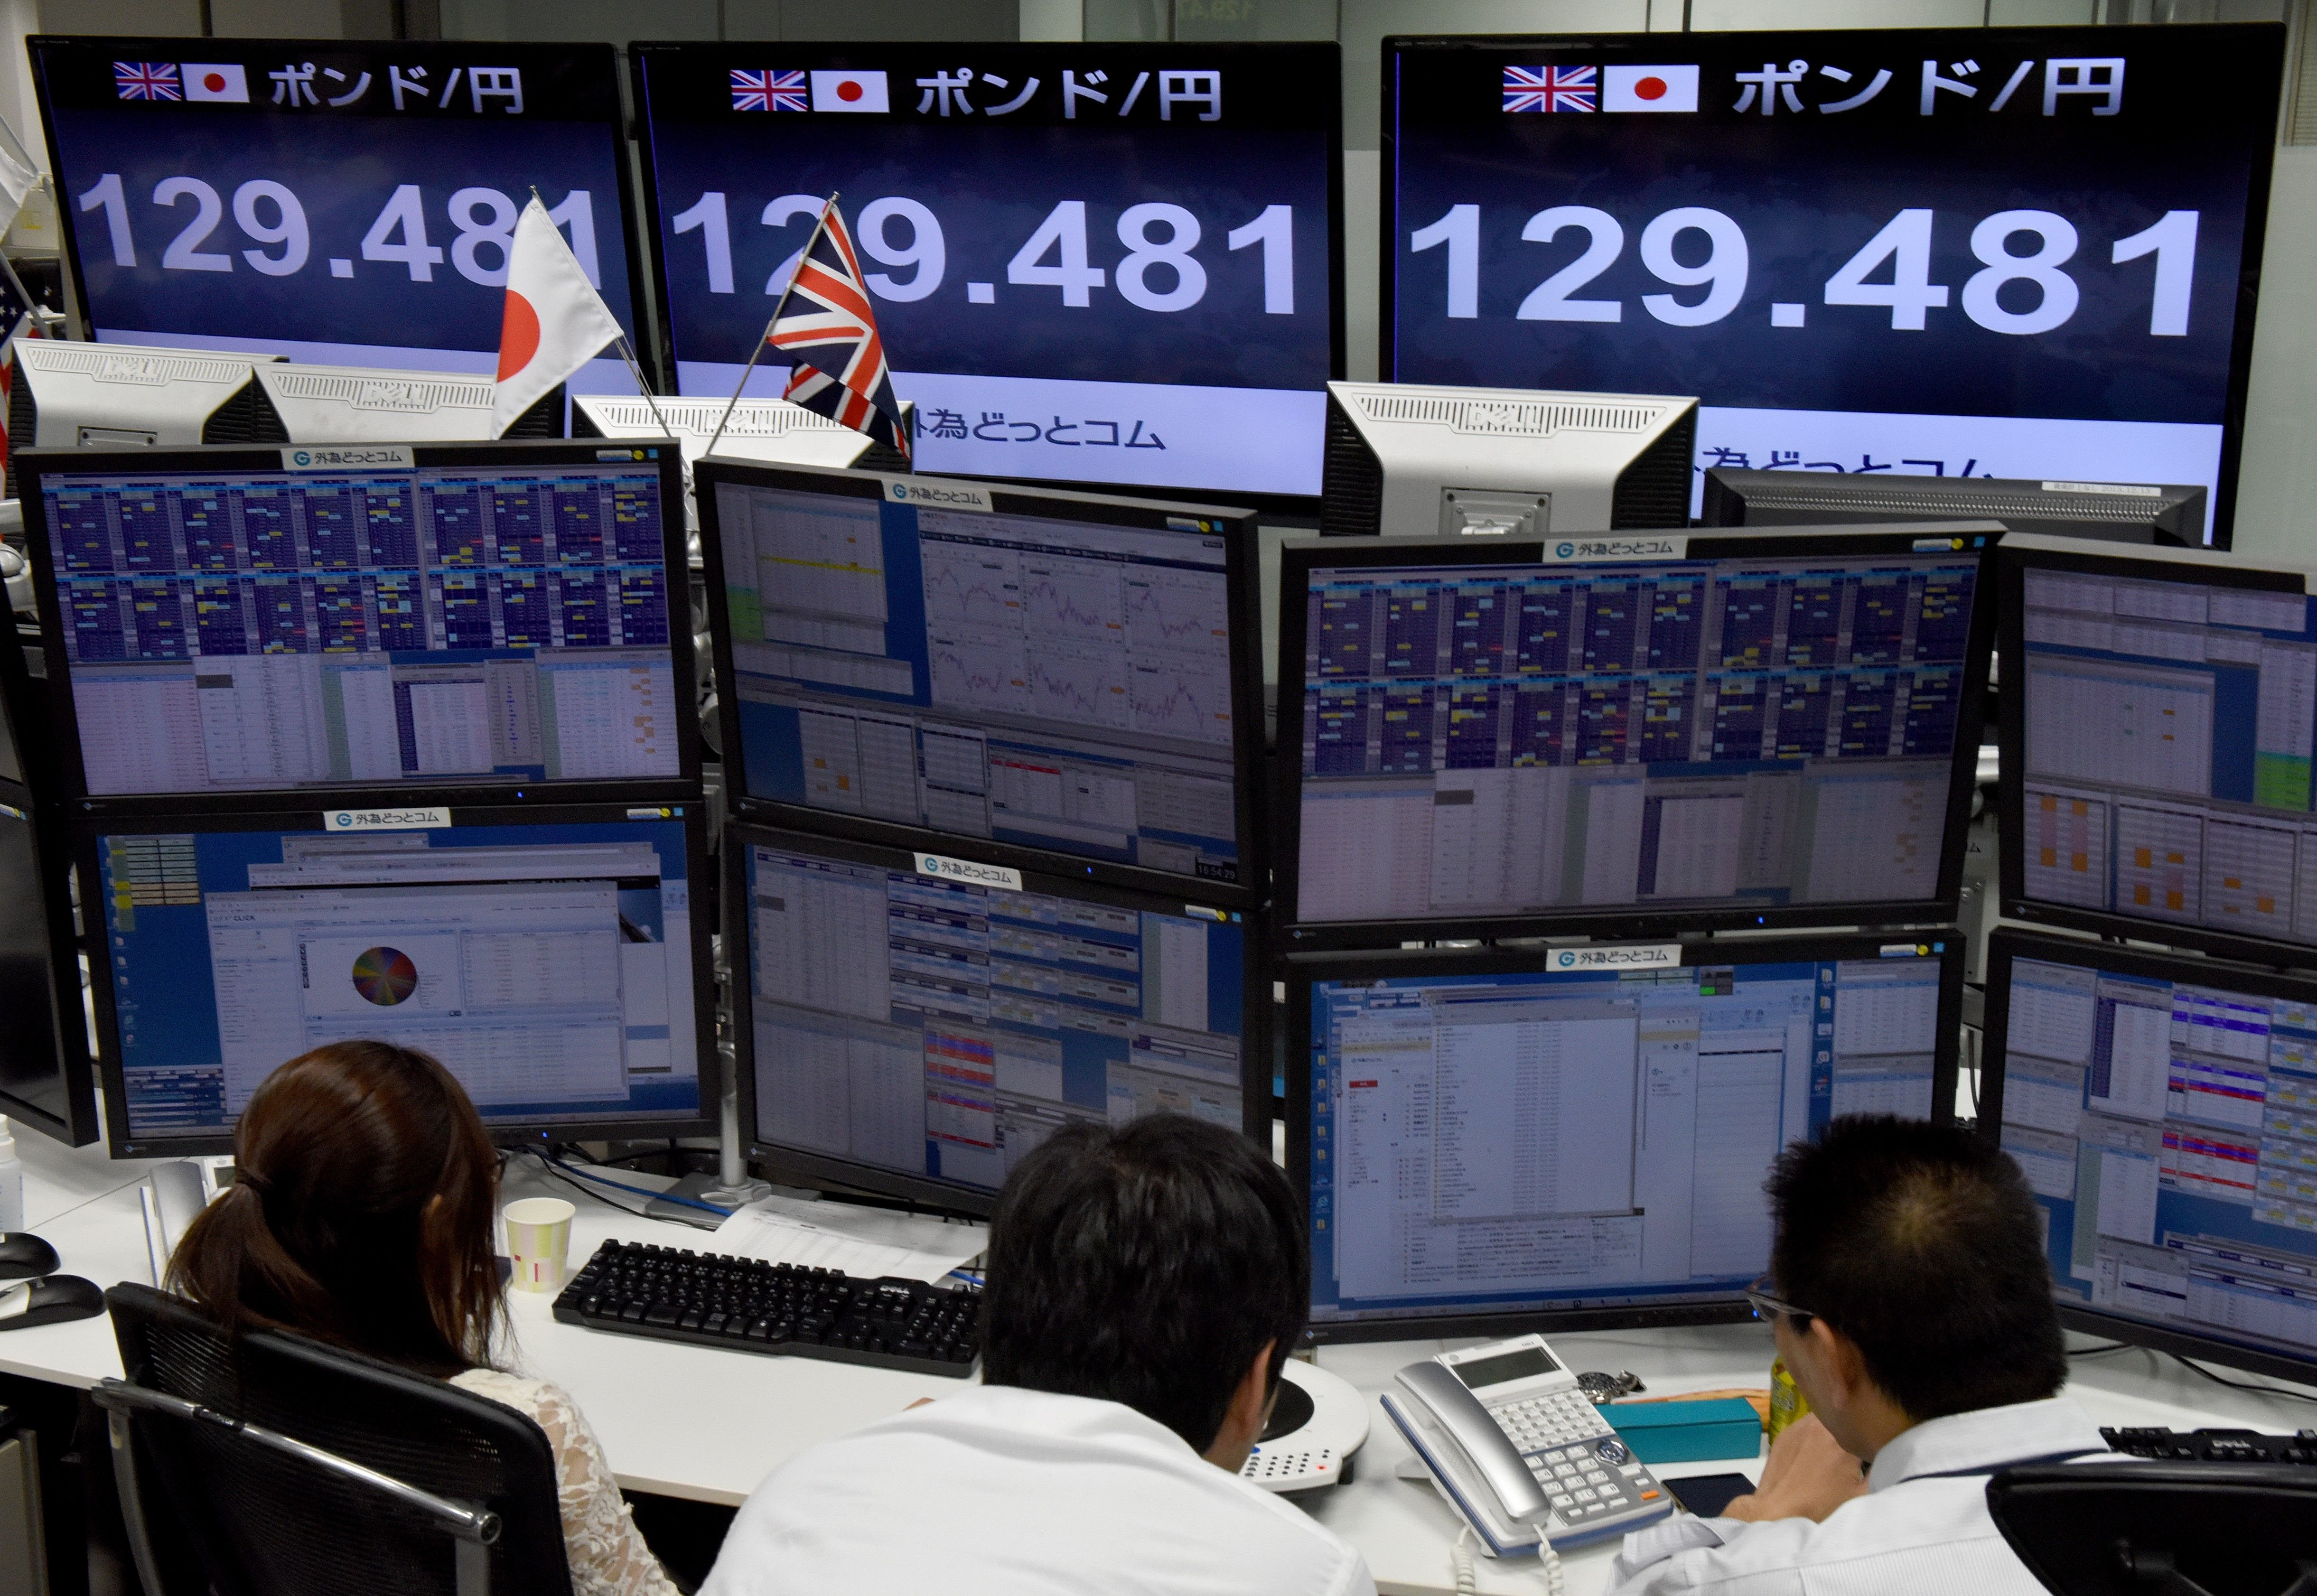 Traders ckeck computer screens showing the Japanese yen rate against the British pound at a brokerage in Tokyo on Oct. 7, 2016.